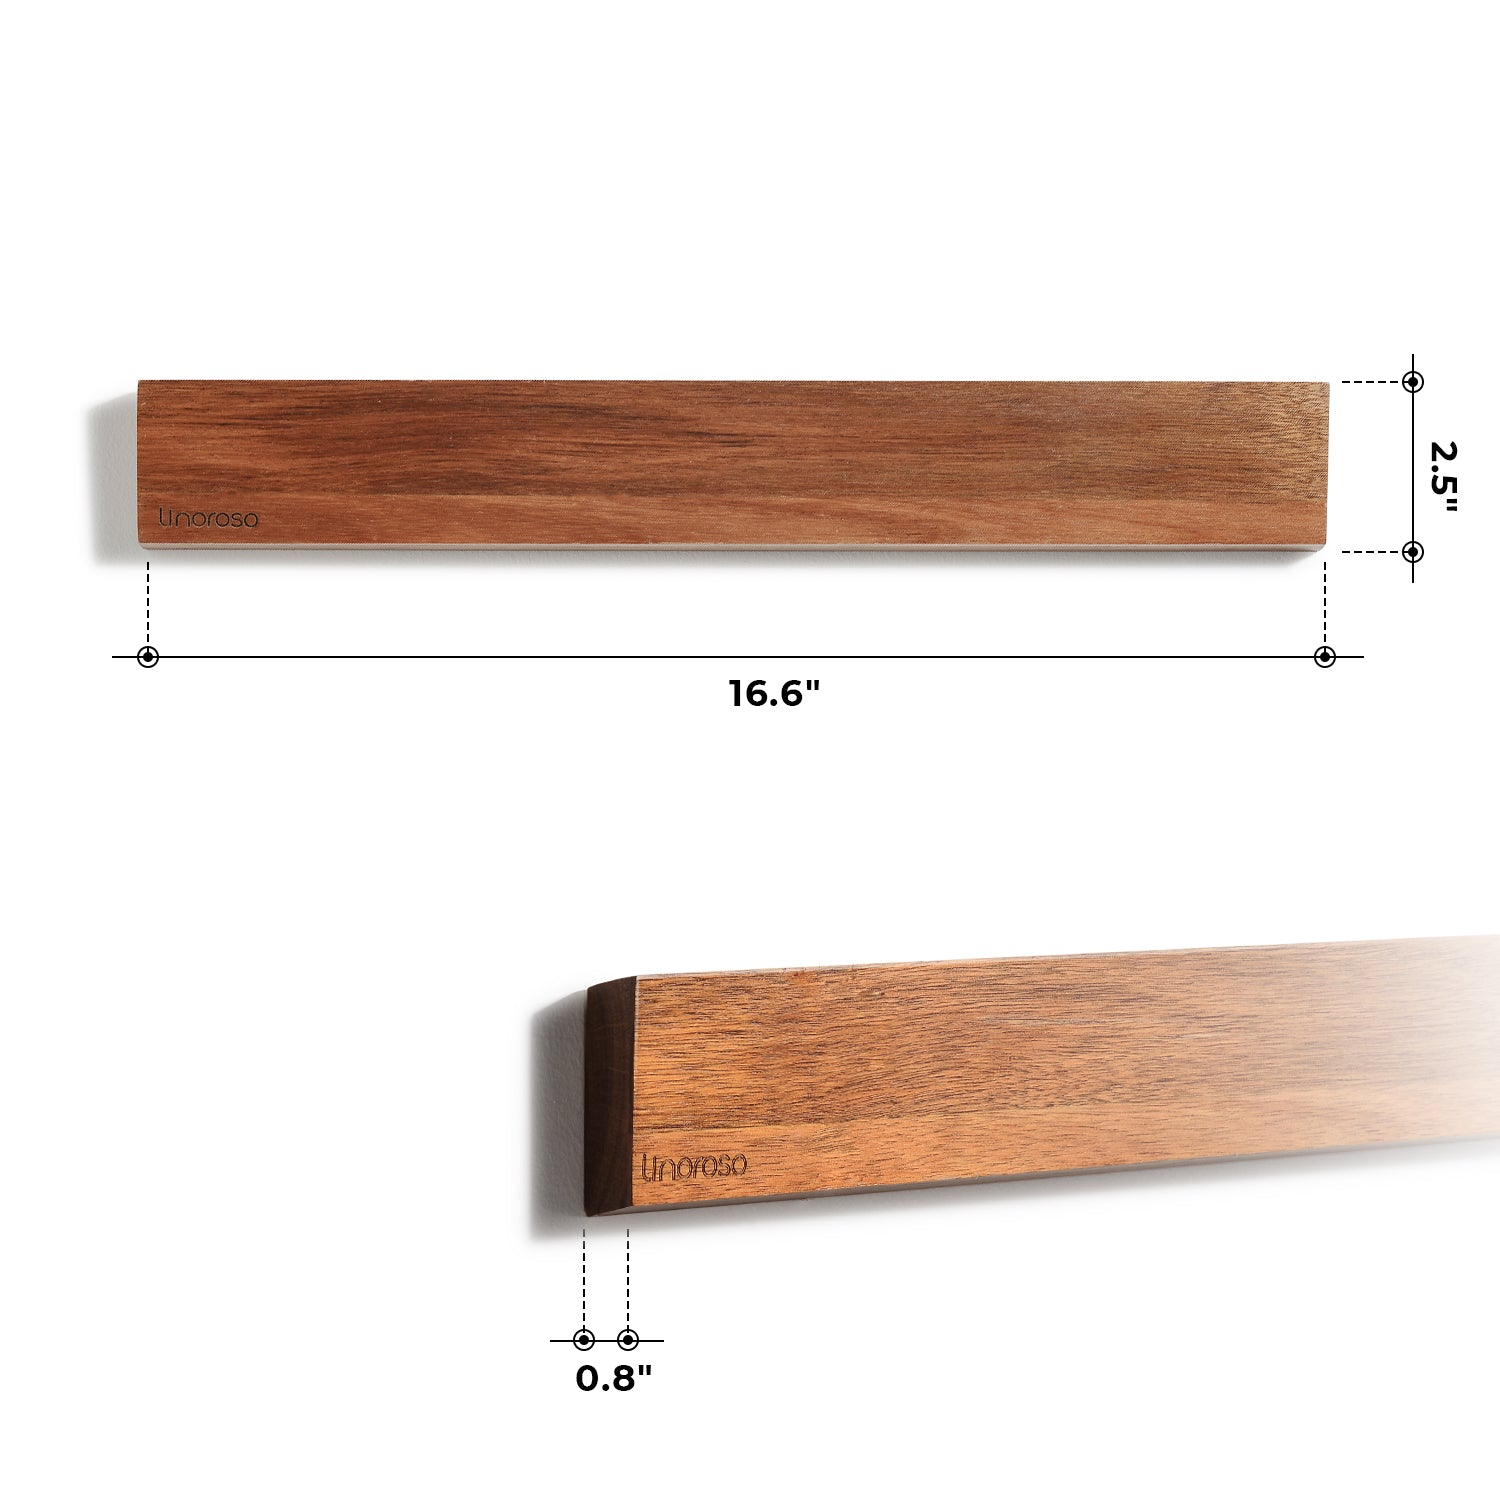 16 1/2 inch Wood Wall Mounted Magnetic Knife Strip